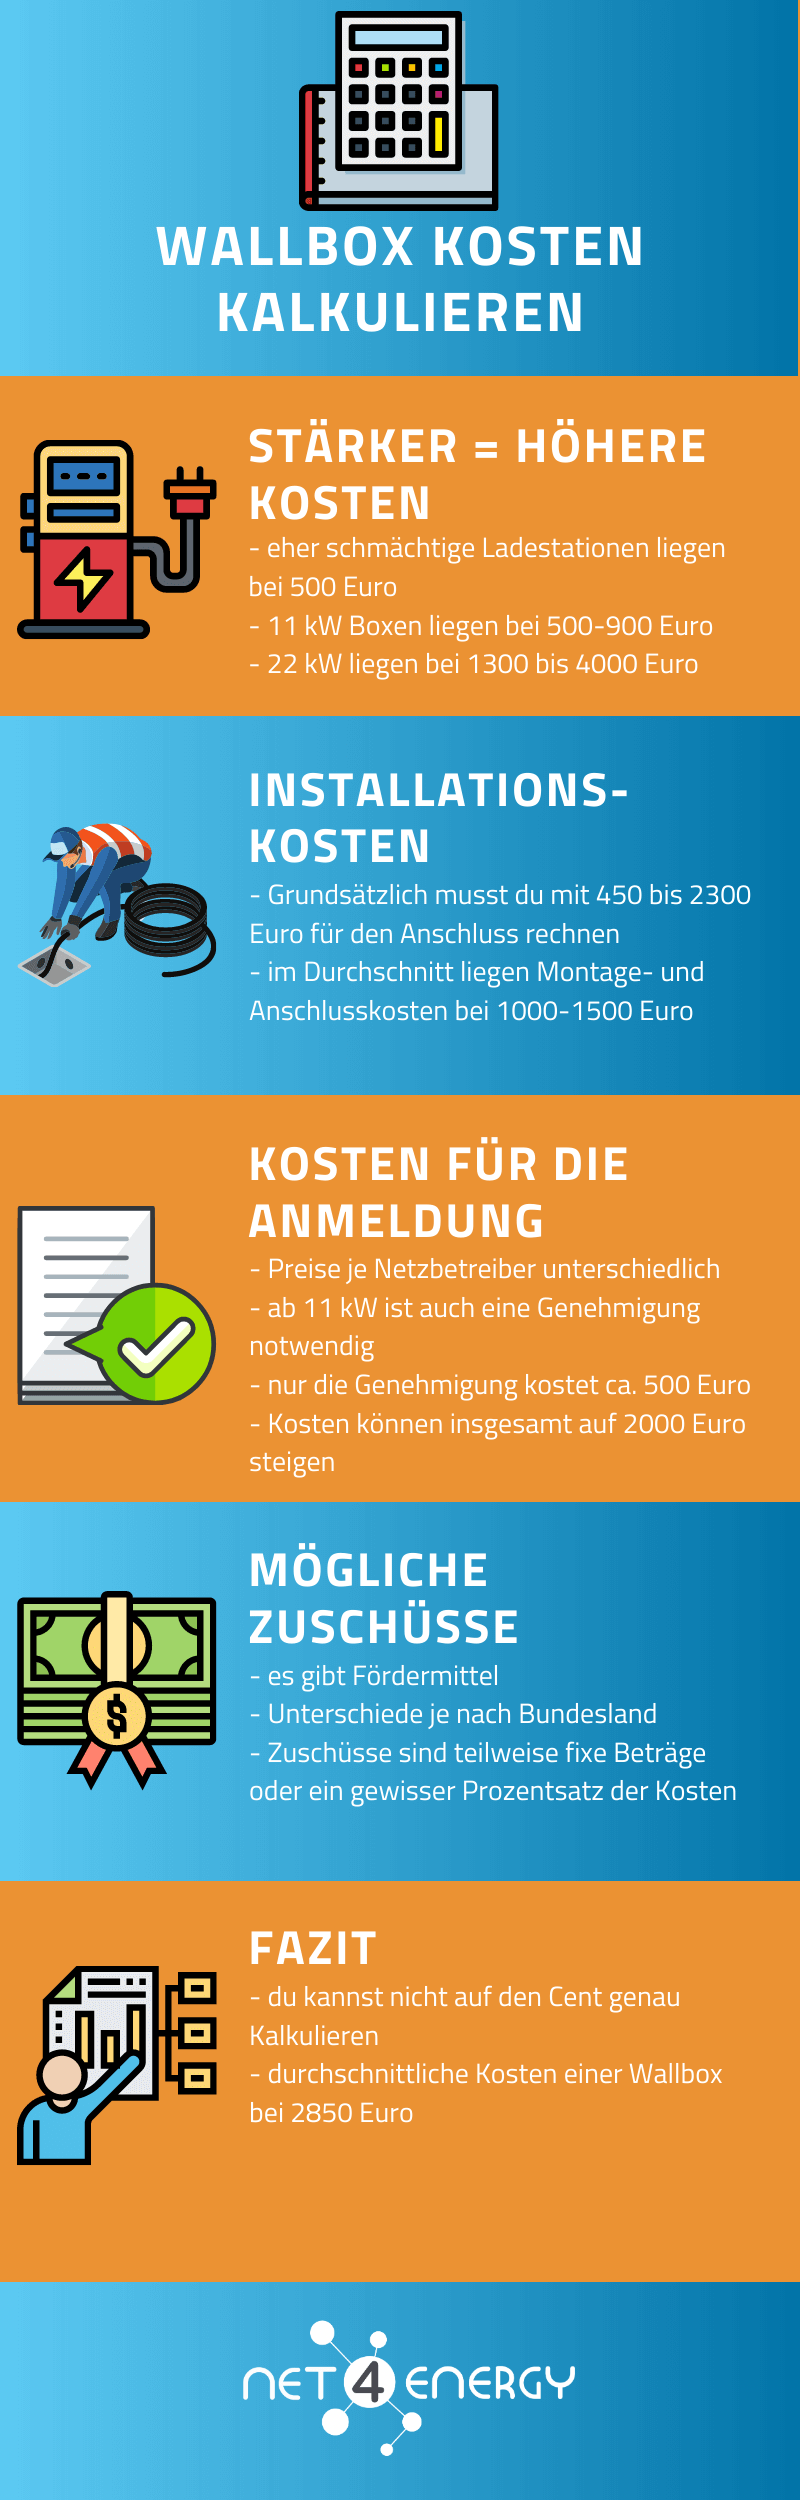 wallbox-kosten-infografik-net4energy